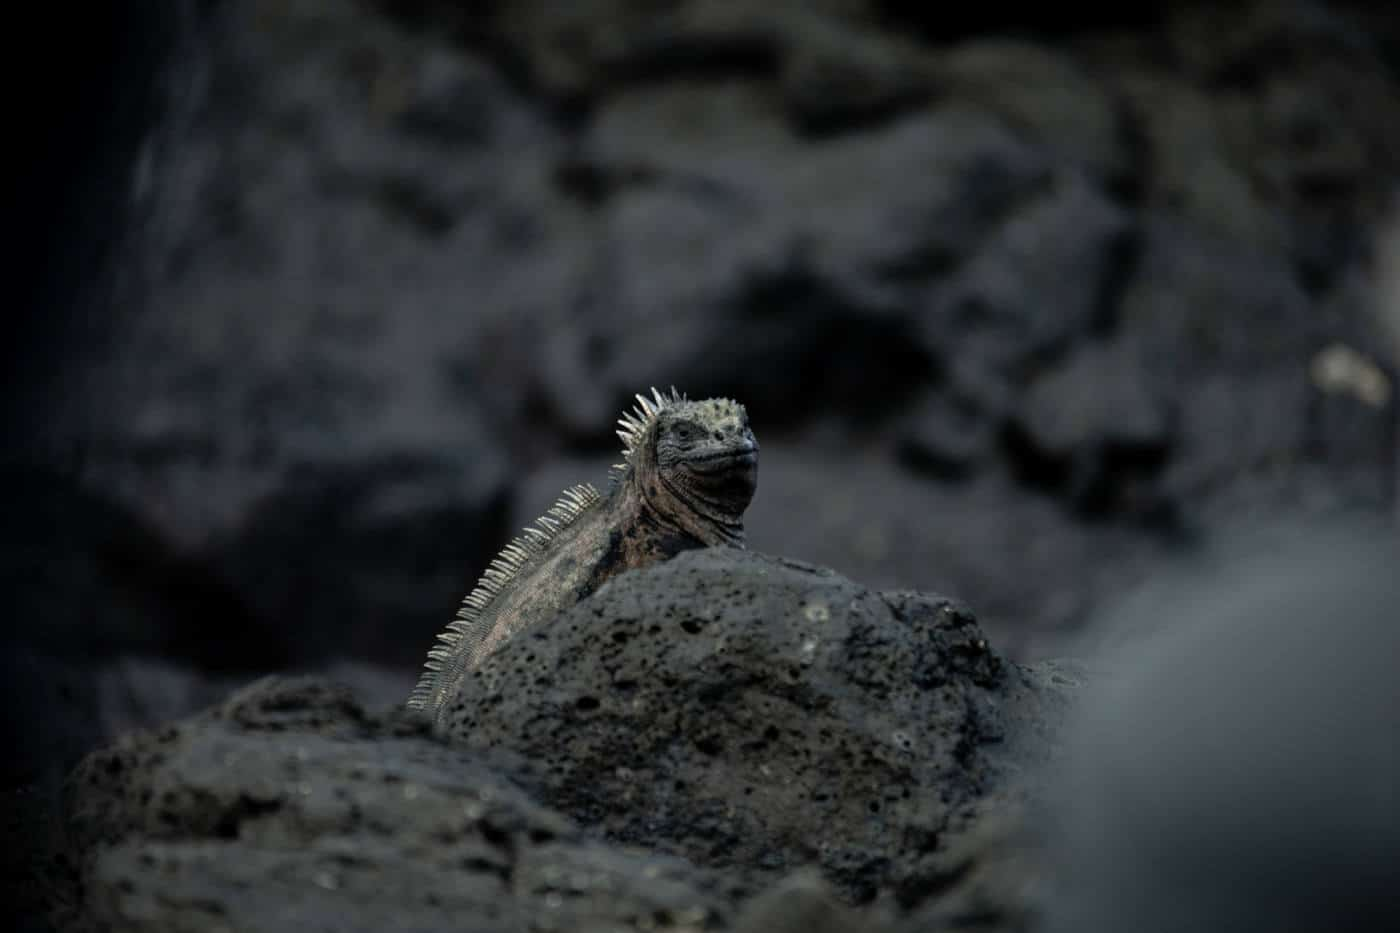 A marine iguana in the Galapagos Islands